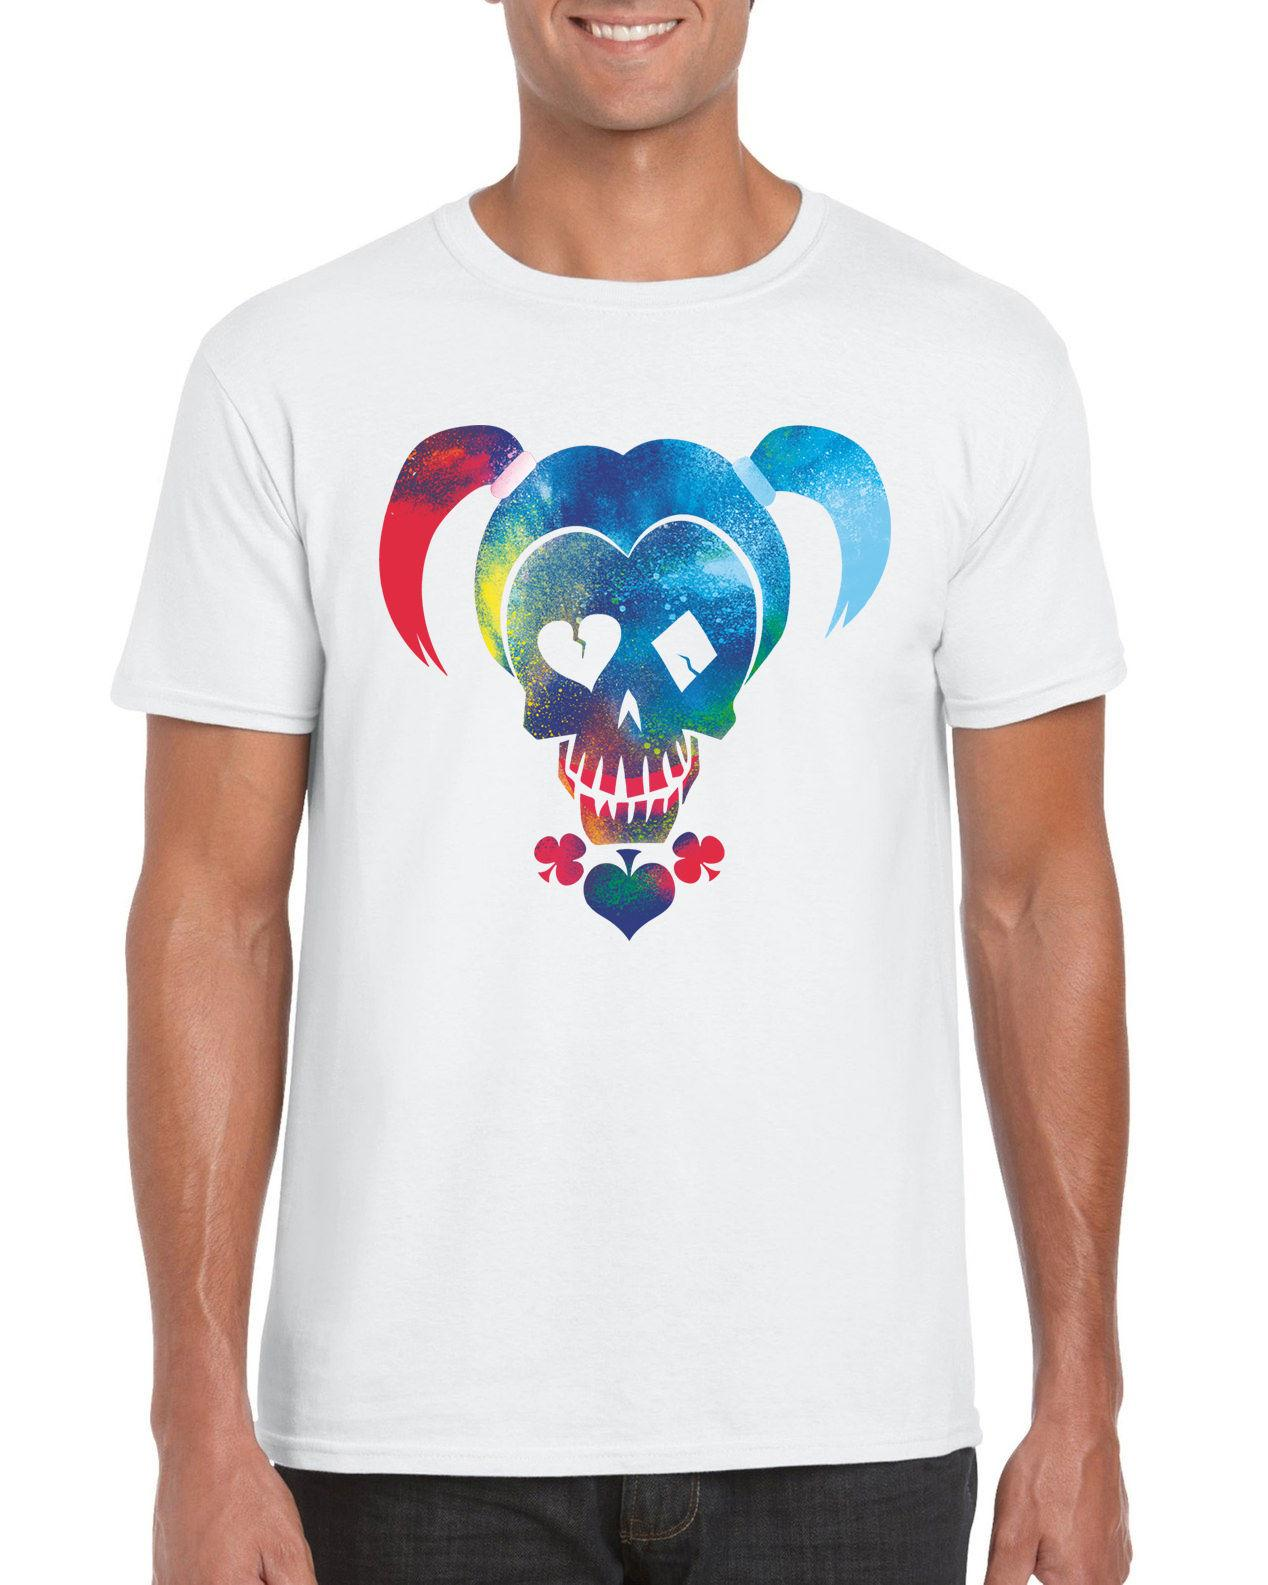 Harley Quinn Spray Paint Logo Suicide Squad Inspired T Shirt All